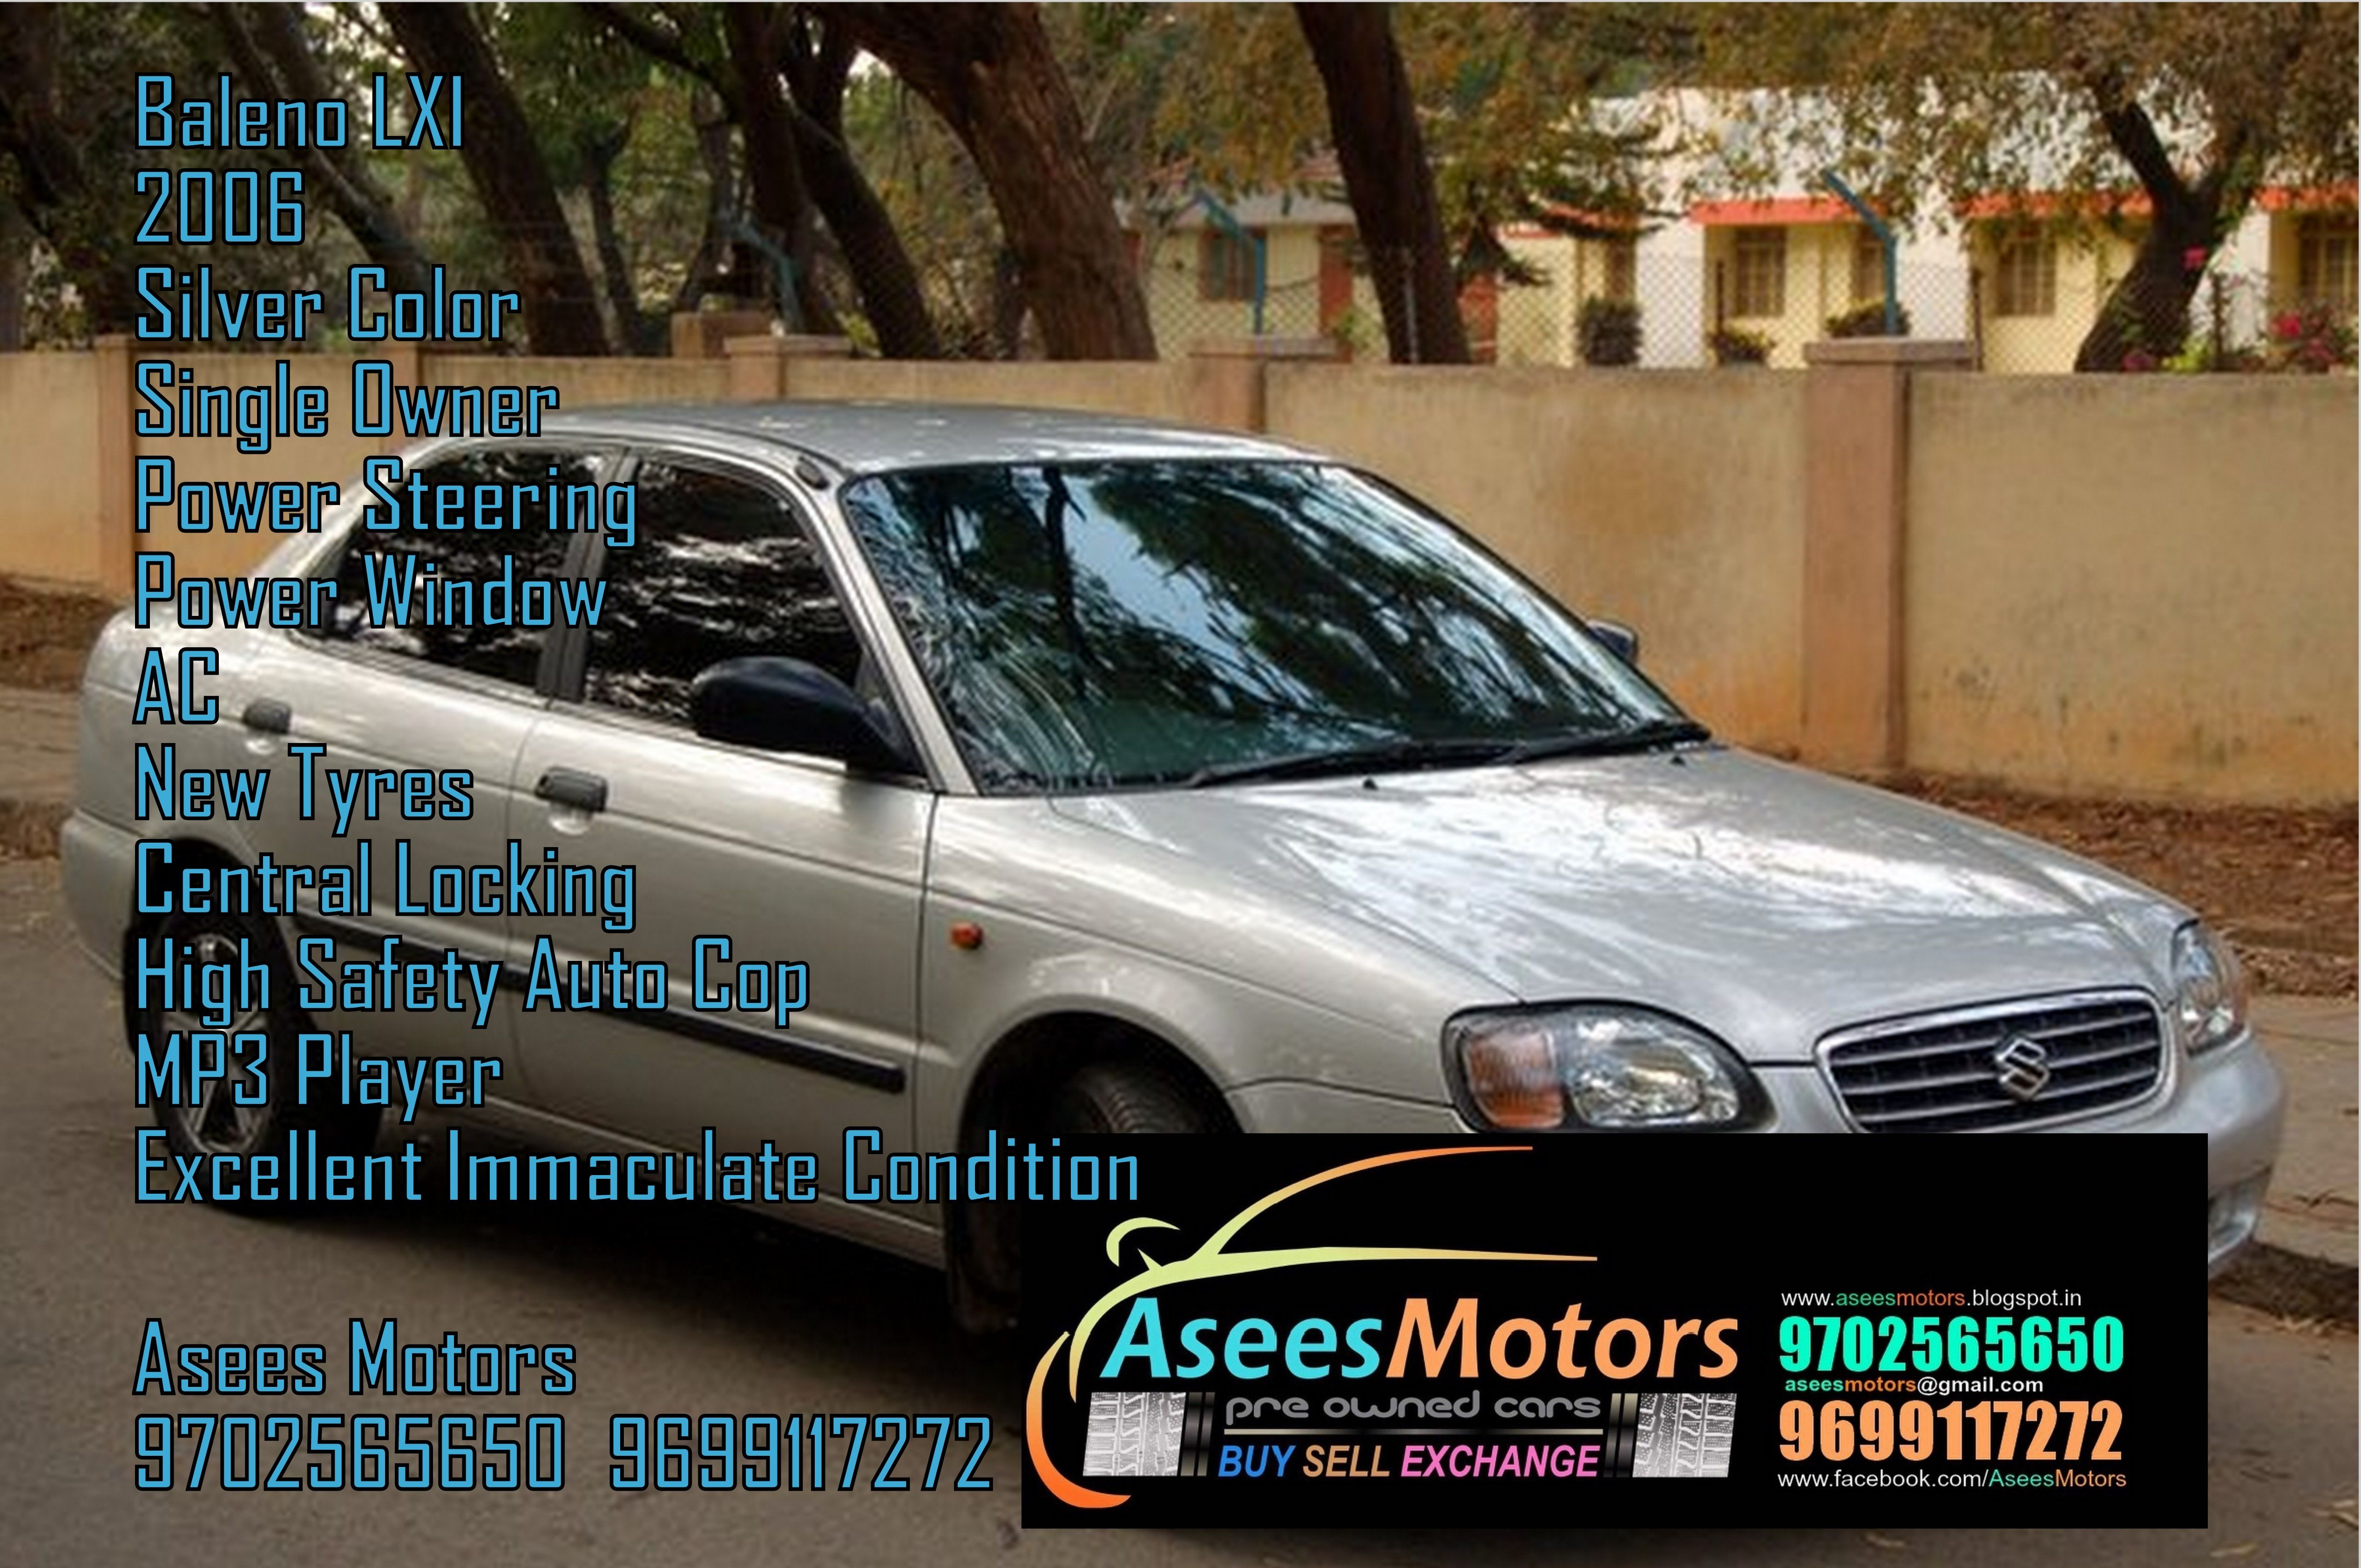 Www Facebook Com Aseesmotors Www Aseesmotors Blogspot In Suzuki New Holland Tractor Repair Manuals